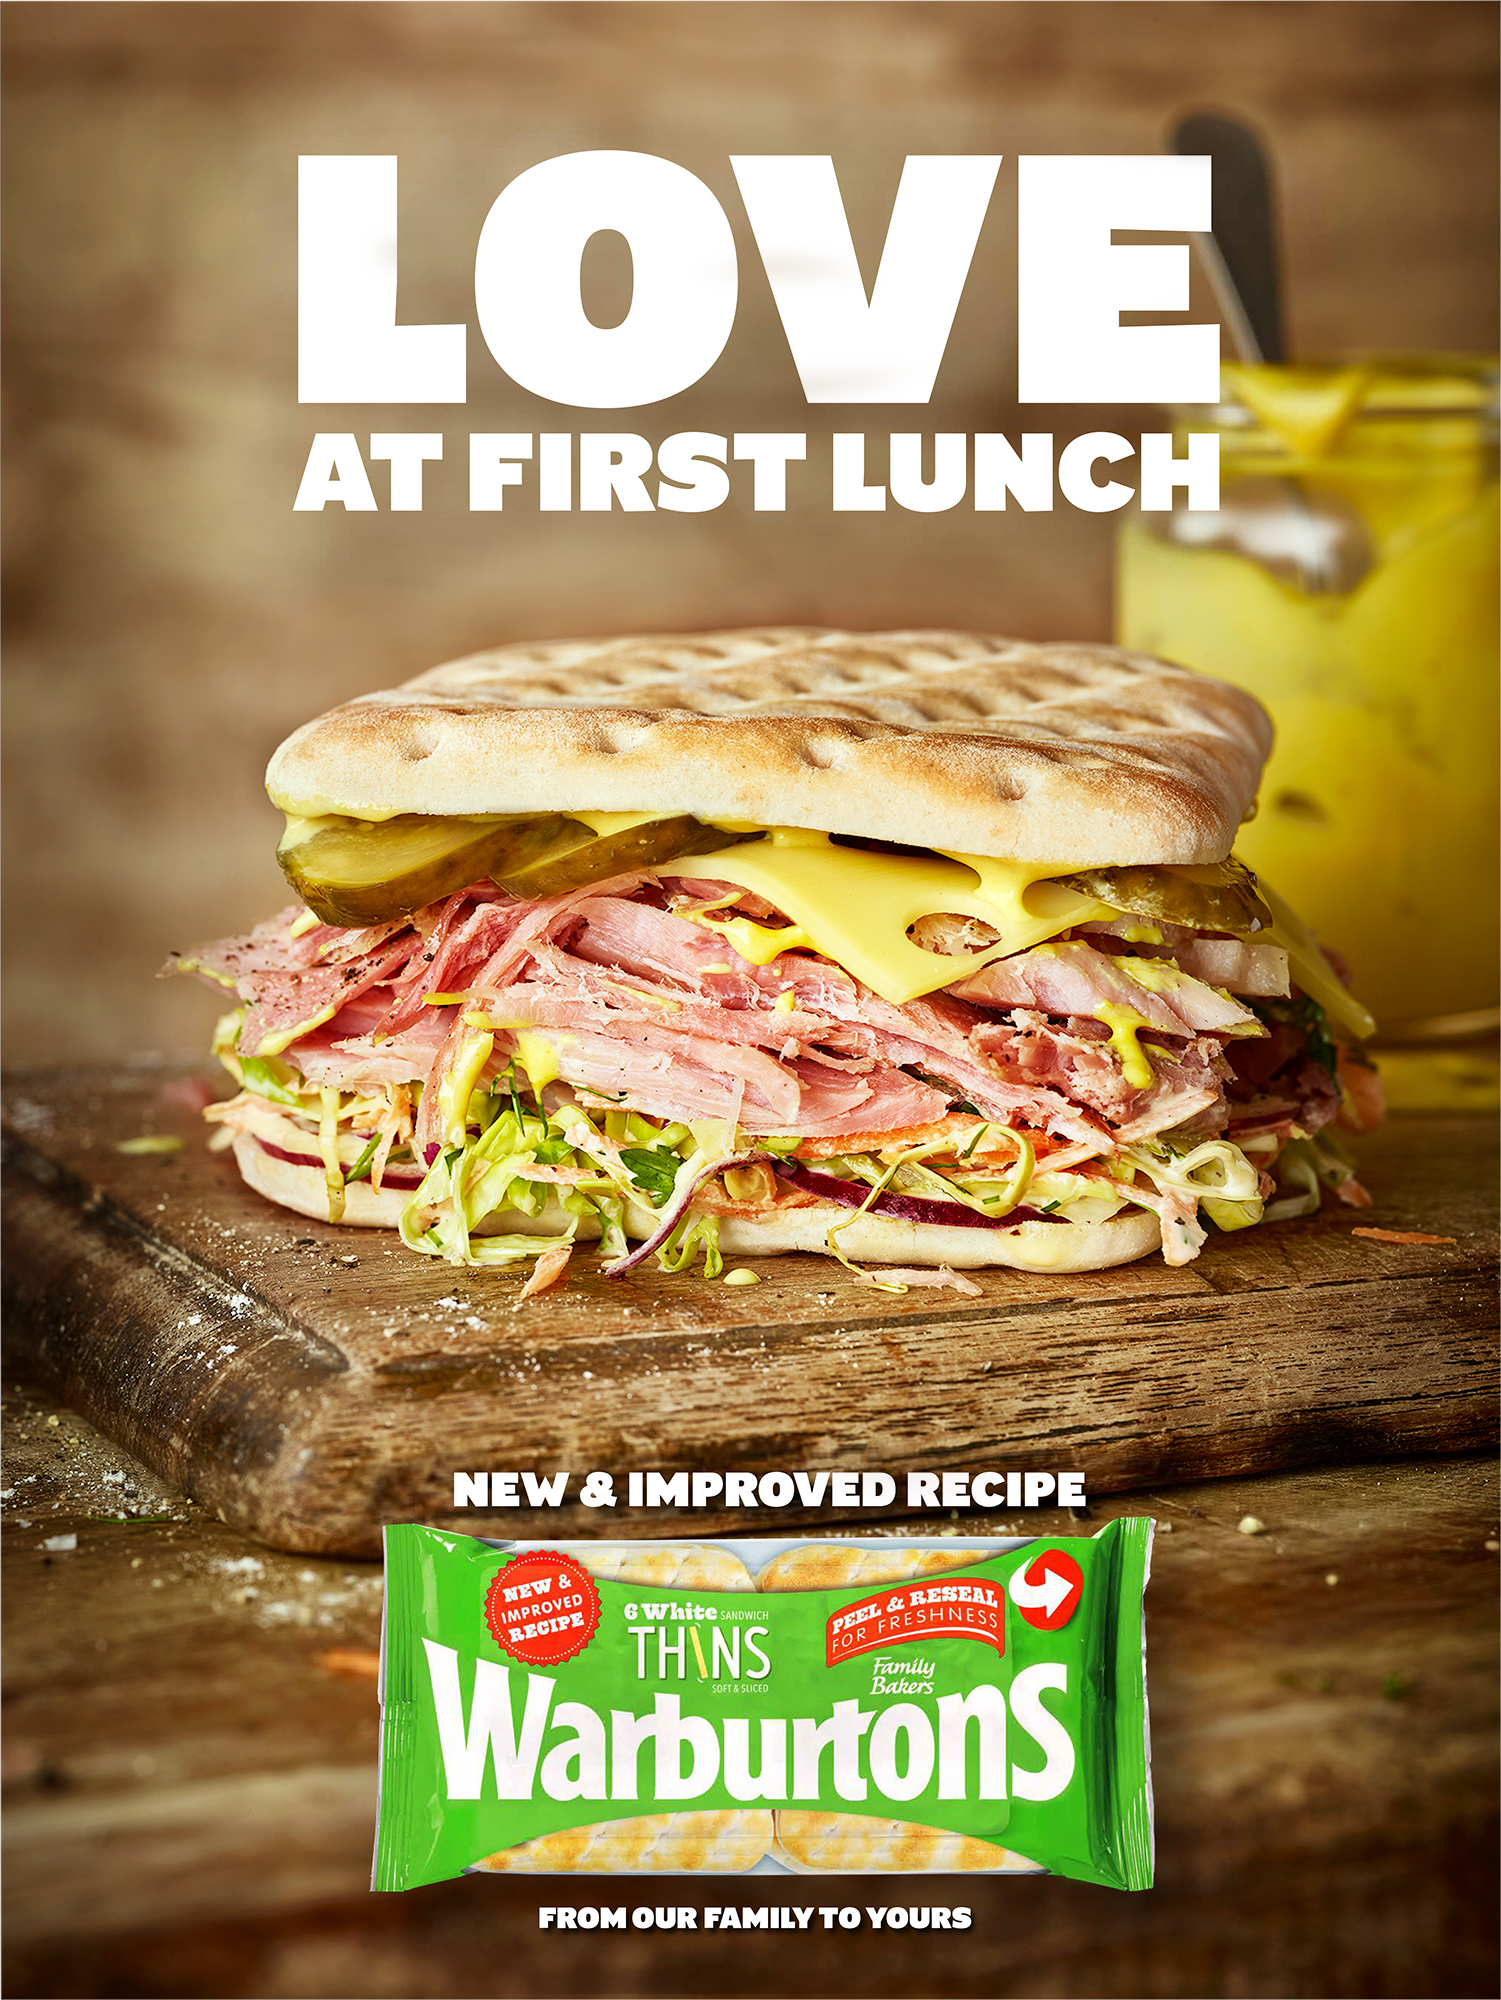 food photographer photography london uk drinks meals lunch dinner brunch breakfast advertising editorial gherkinspickles sandwich sarnie bread baked mayonnaise lettuce swiss cheese emmental ham hock gammon joint meat pig pork red onion warburtons thins mustard